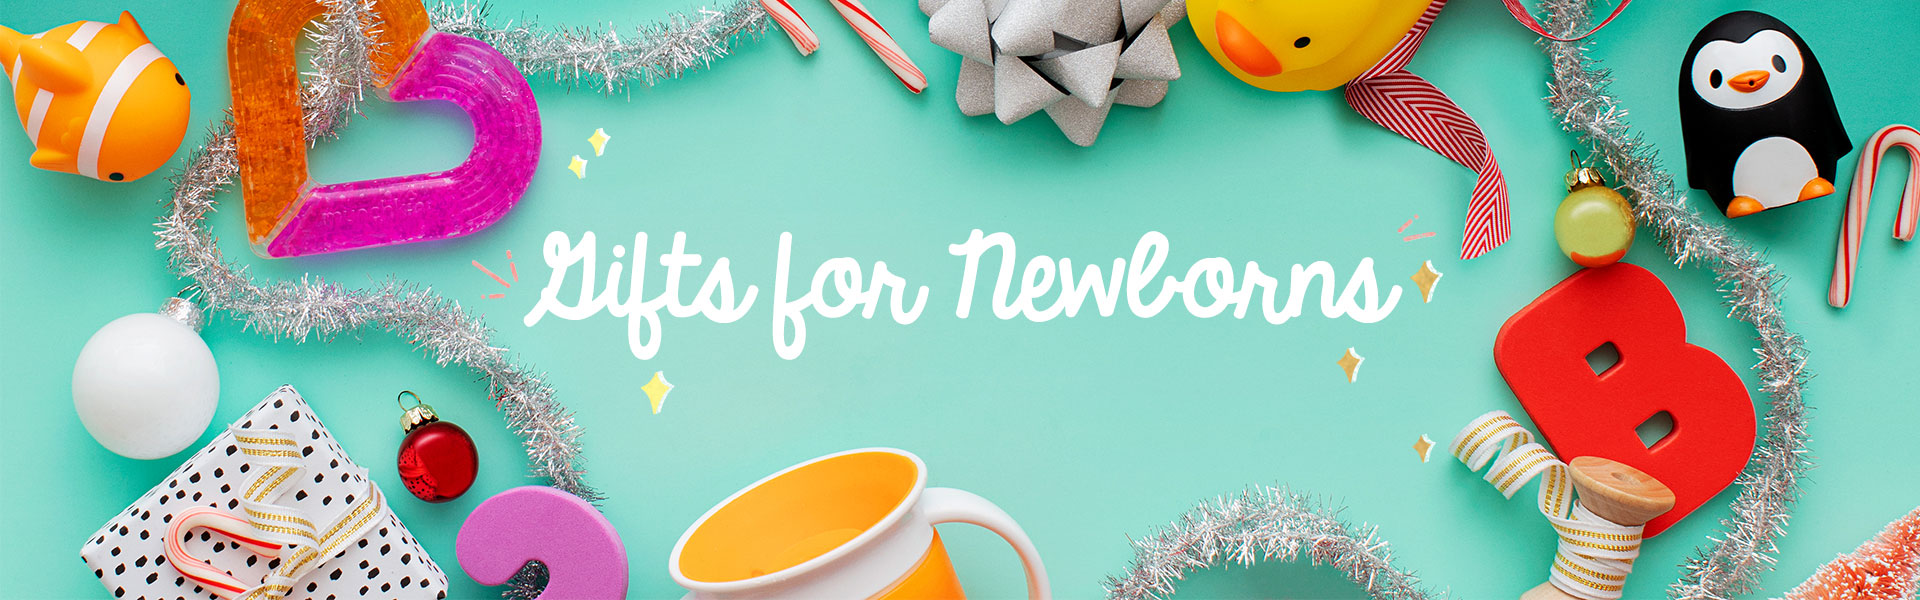 Holiday Gifts for Newborns